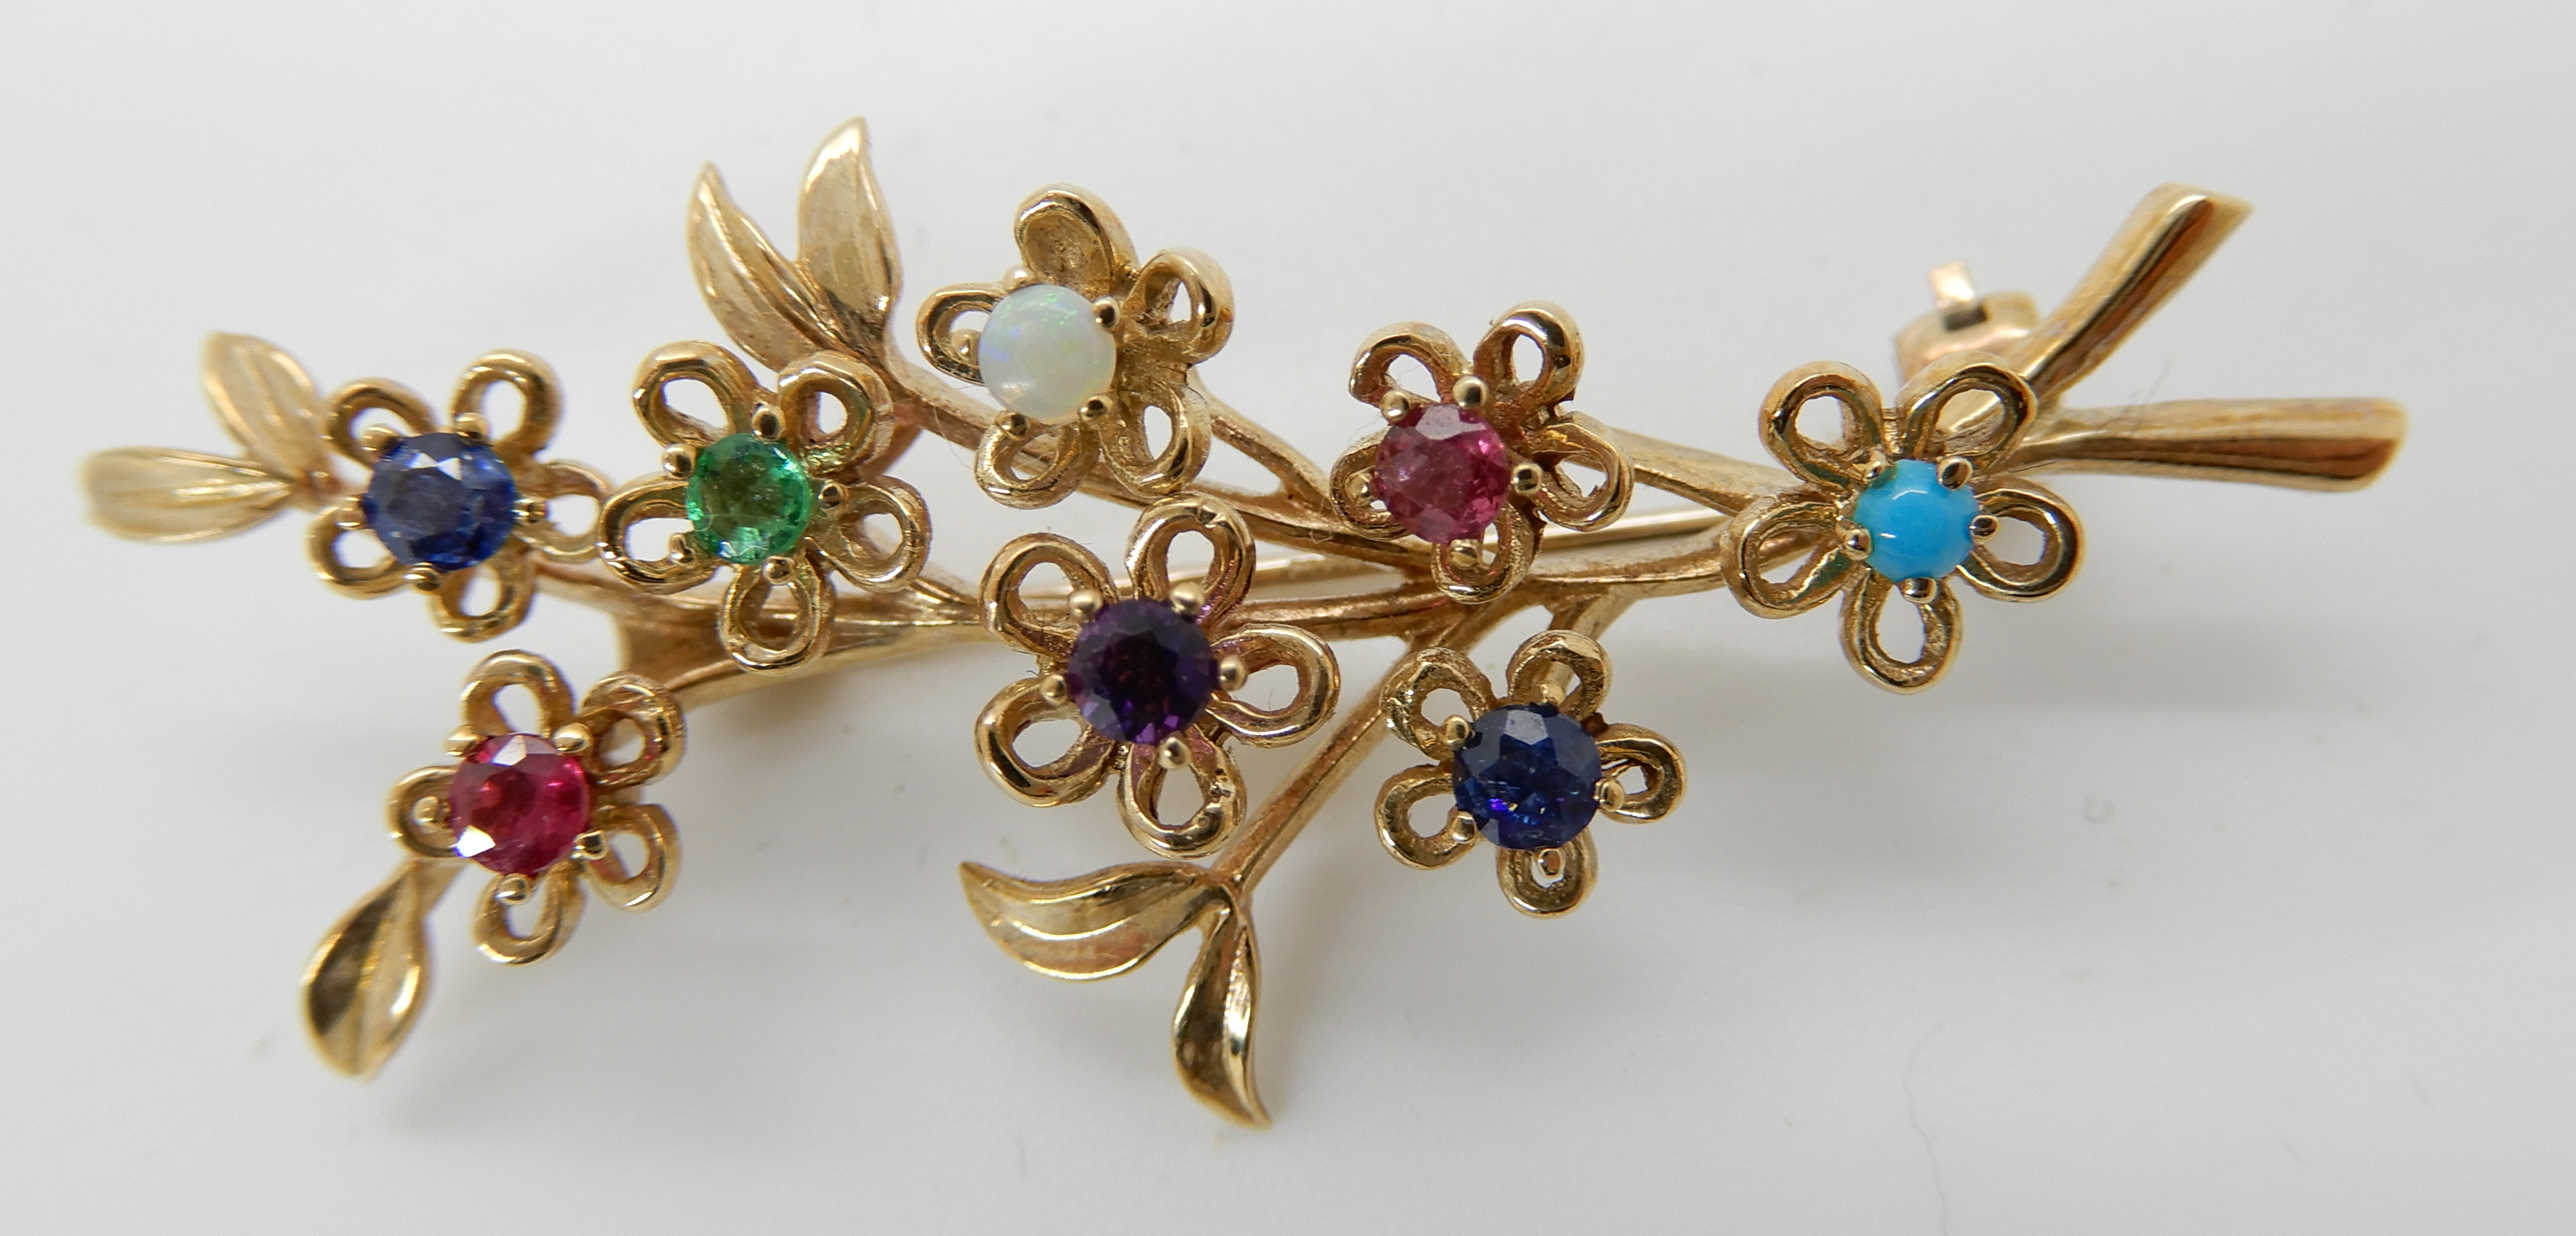 Lot 37 - A 9ct gold mixed gem set bunch of flower brooch, length 4.7cm, together with a 9ct gold pearl set